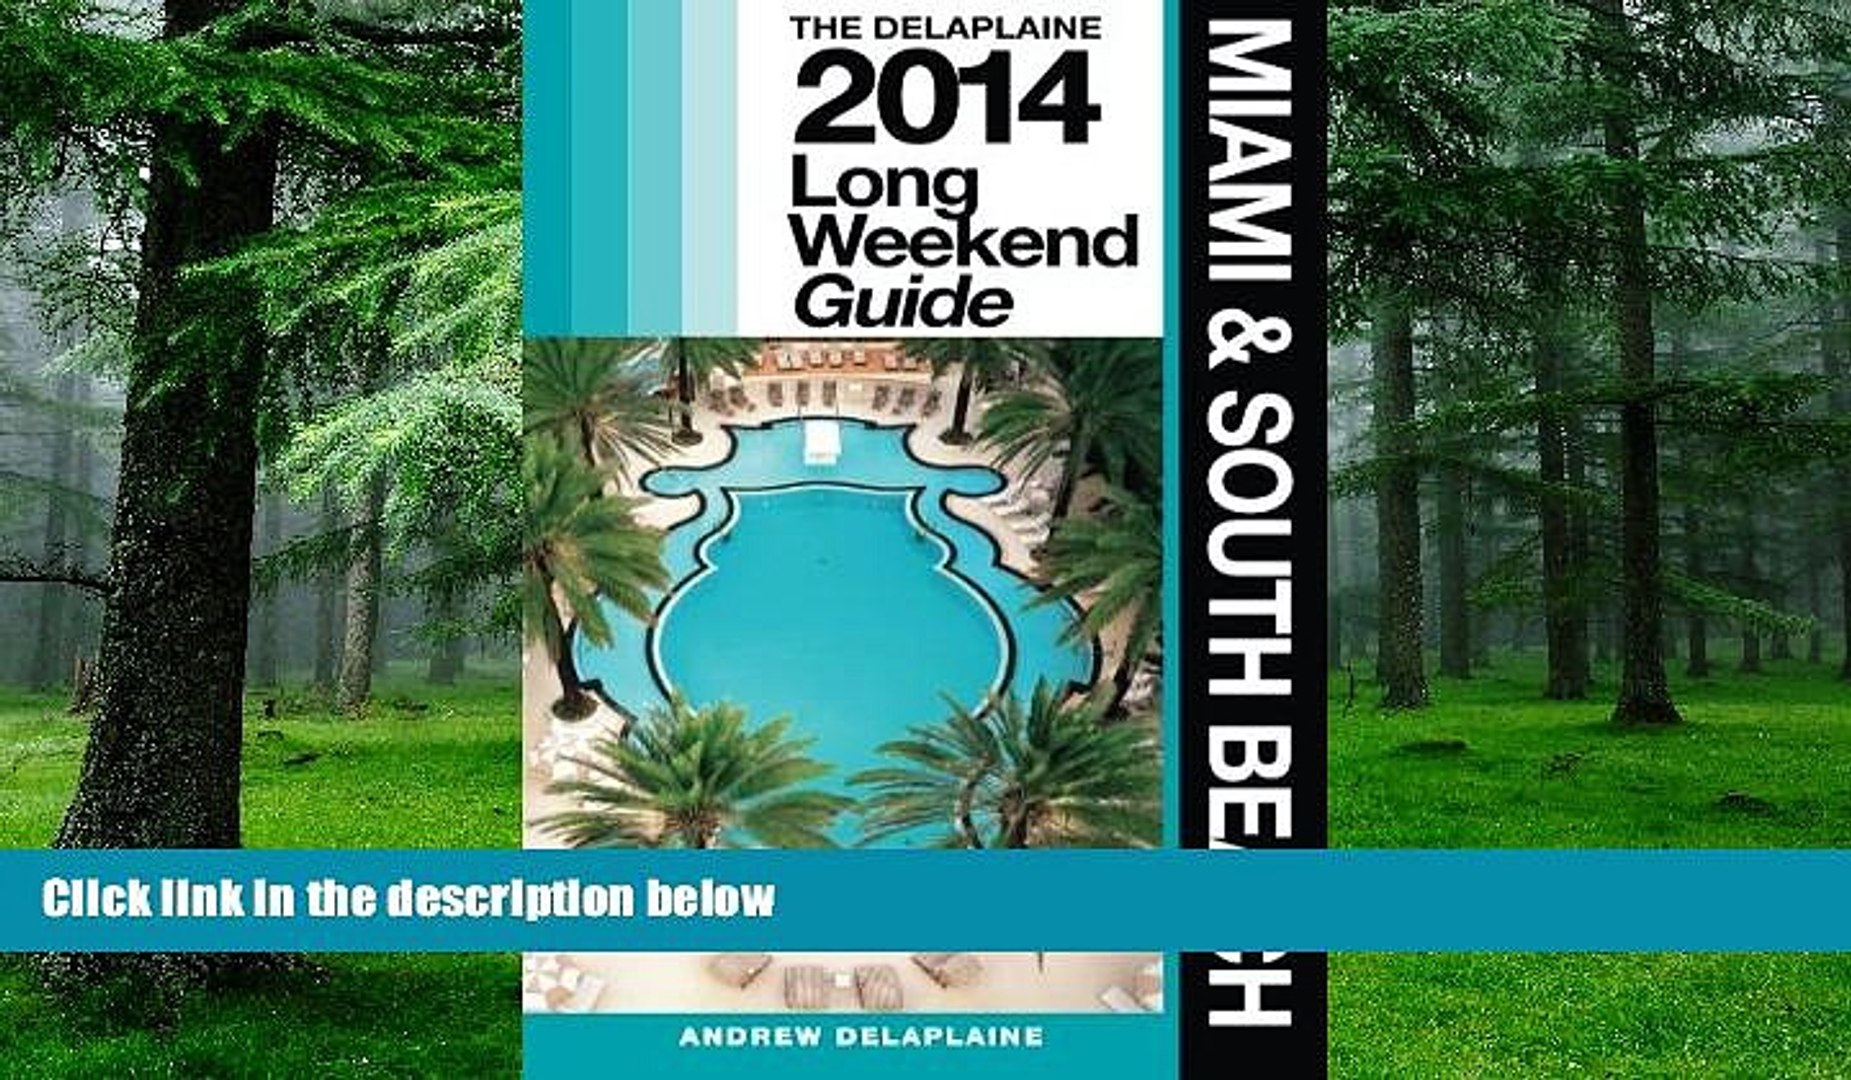 Buy NOW  Miami    South Beach: The Delaplaine 2014 Long Weekend Guide (Long Weekend Guides) Andrew